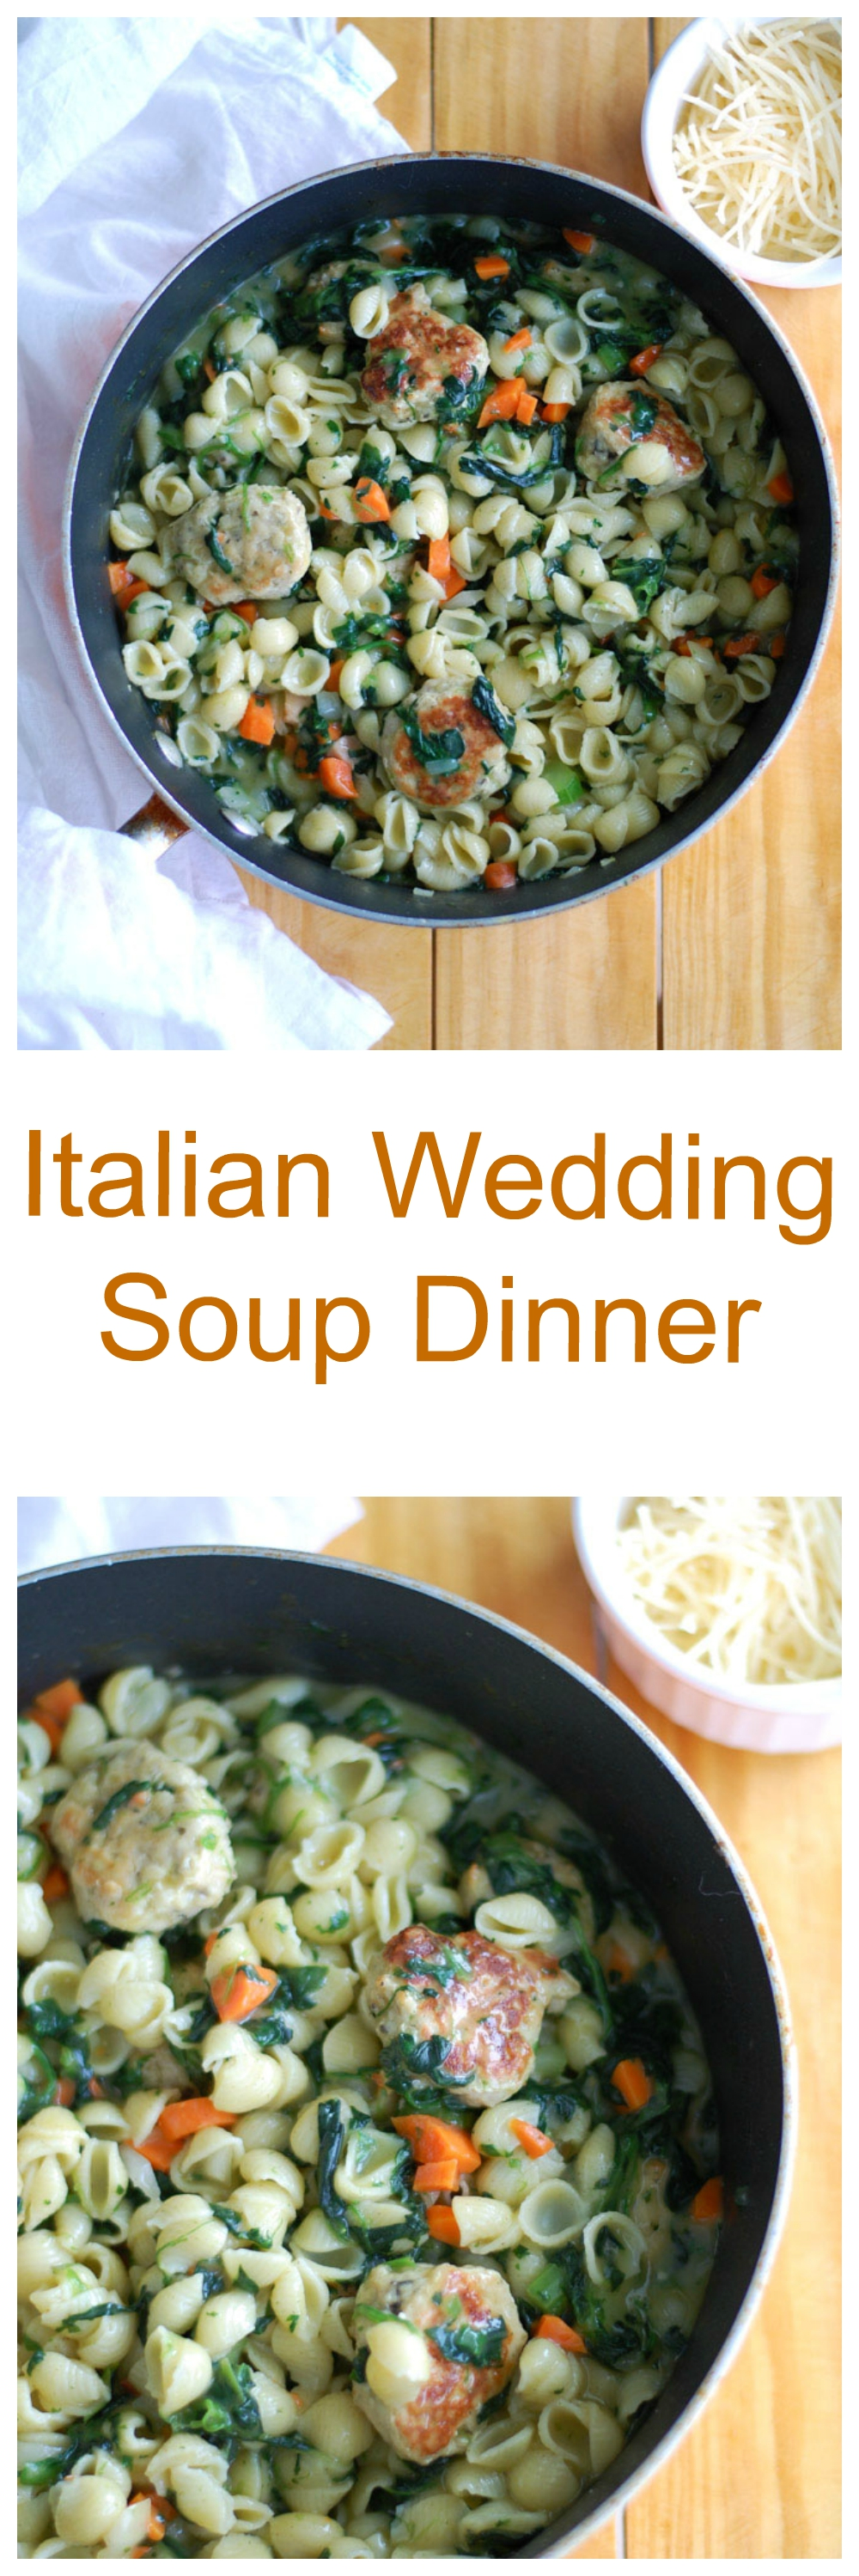 Italian Wedding Soup Dinner